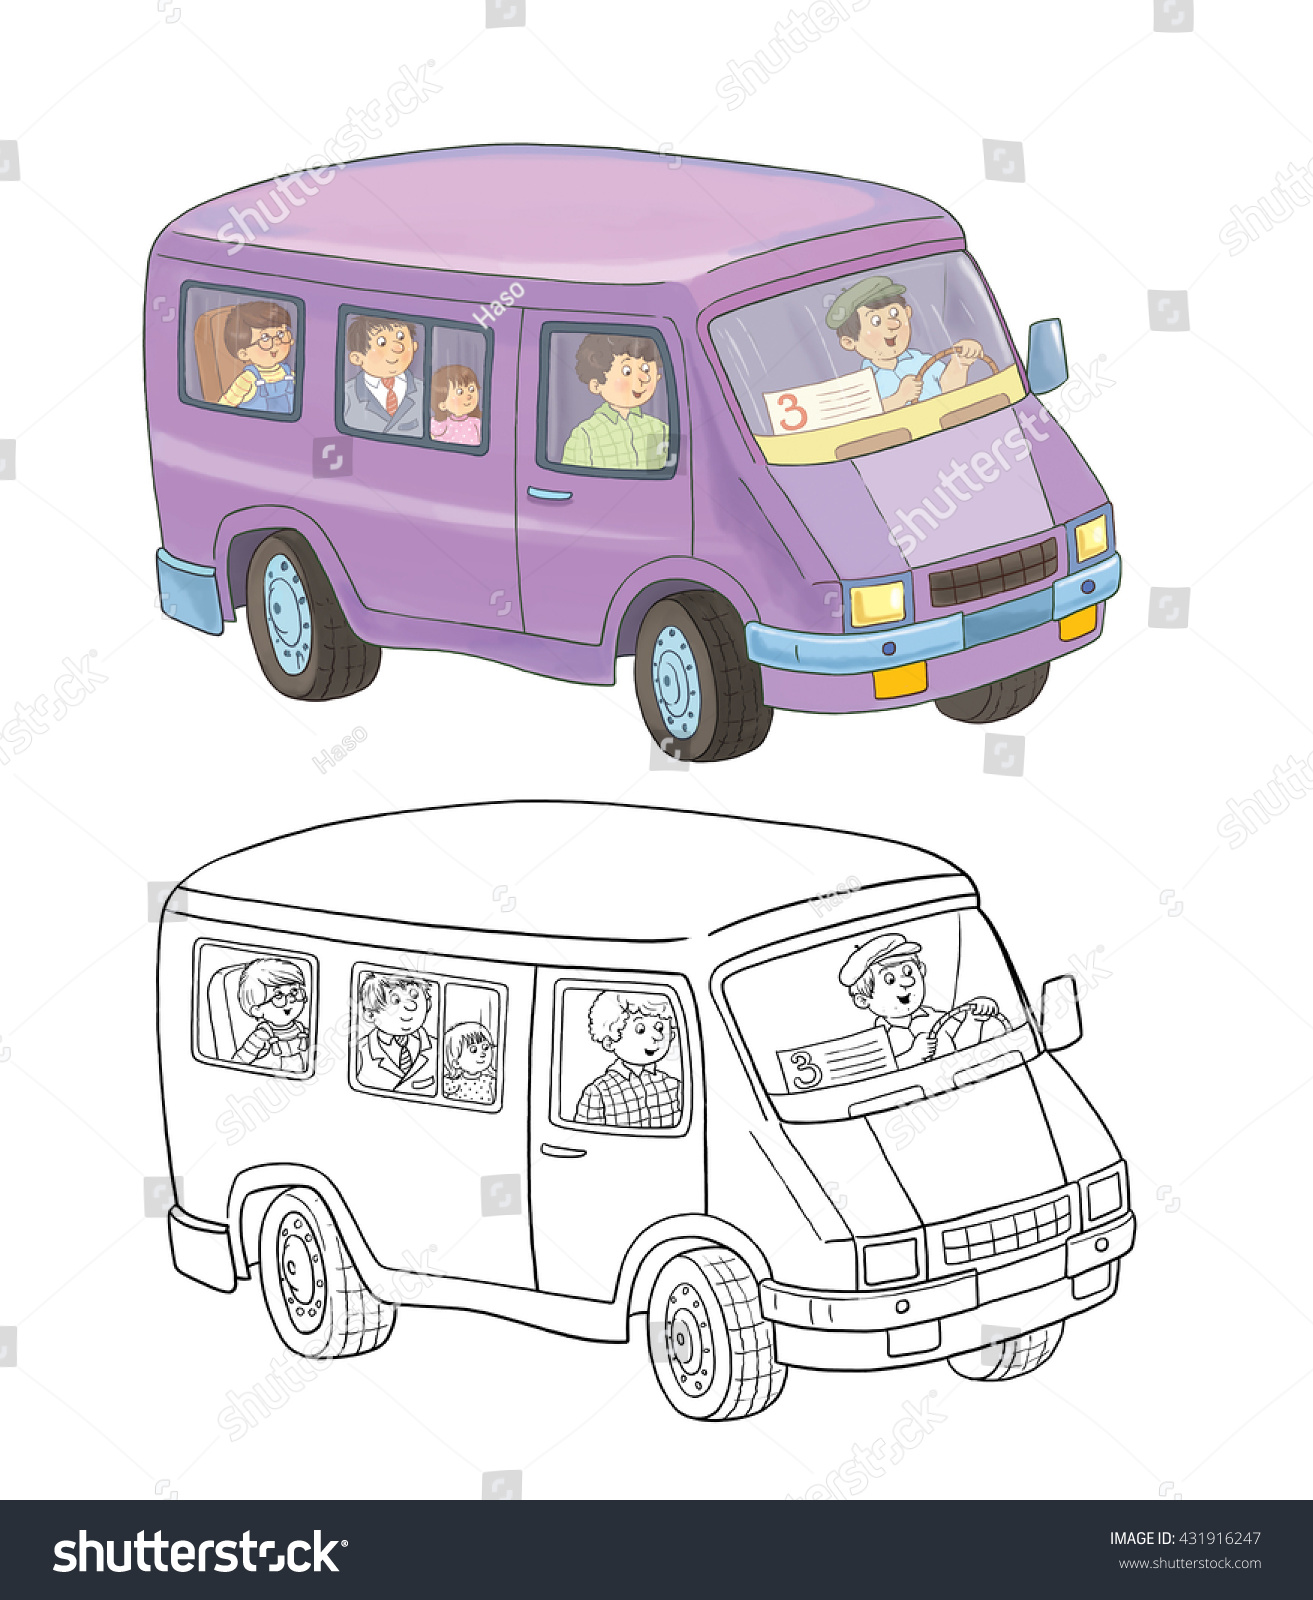 A Minibus With Passengers Coloring Book Page Illustration For Children Cute